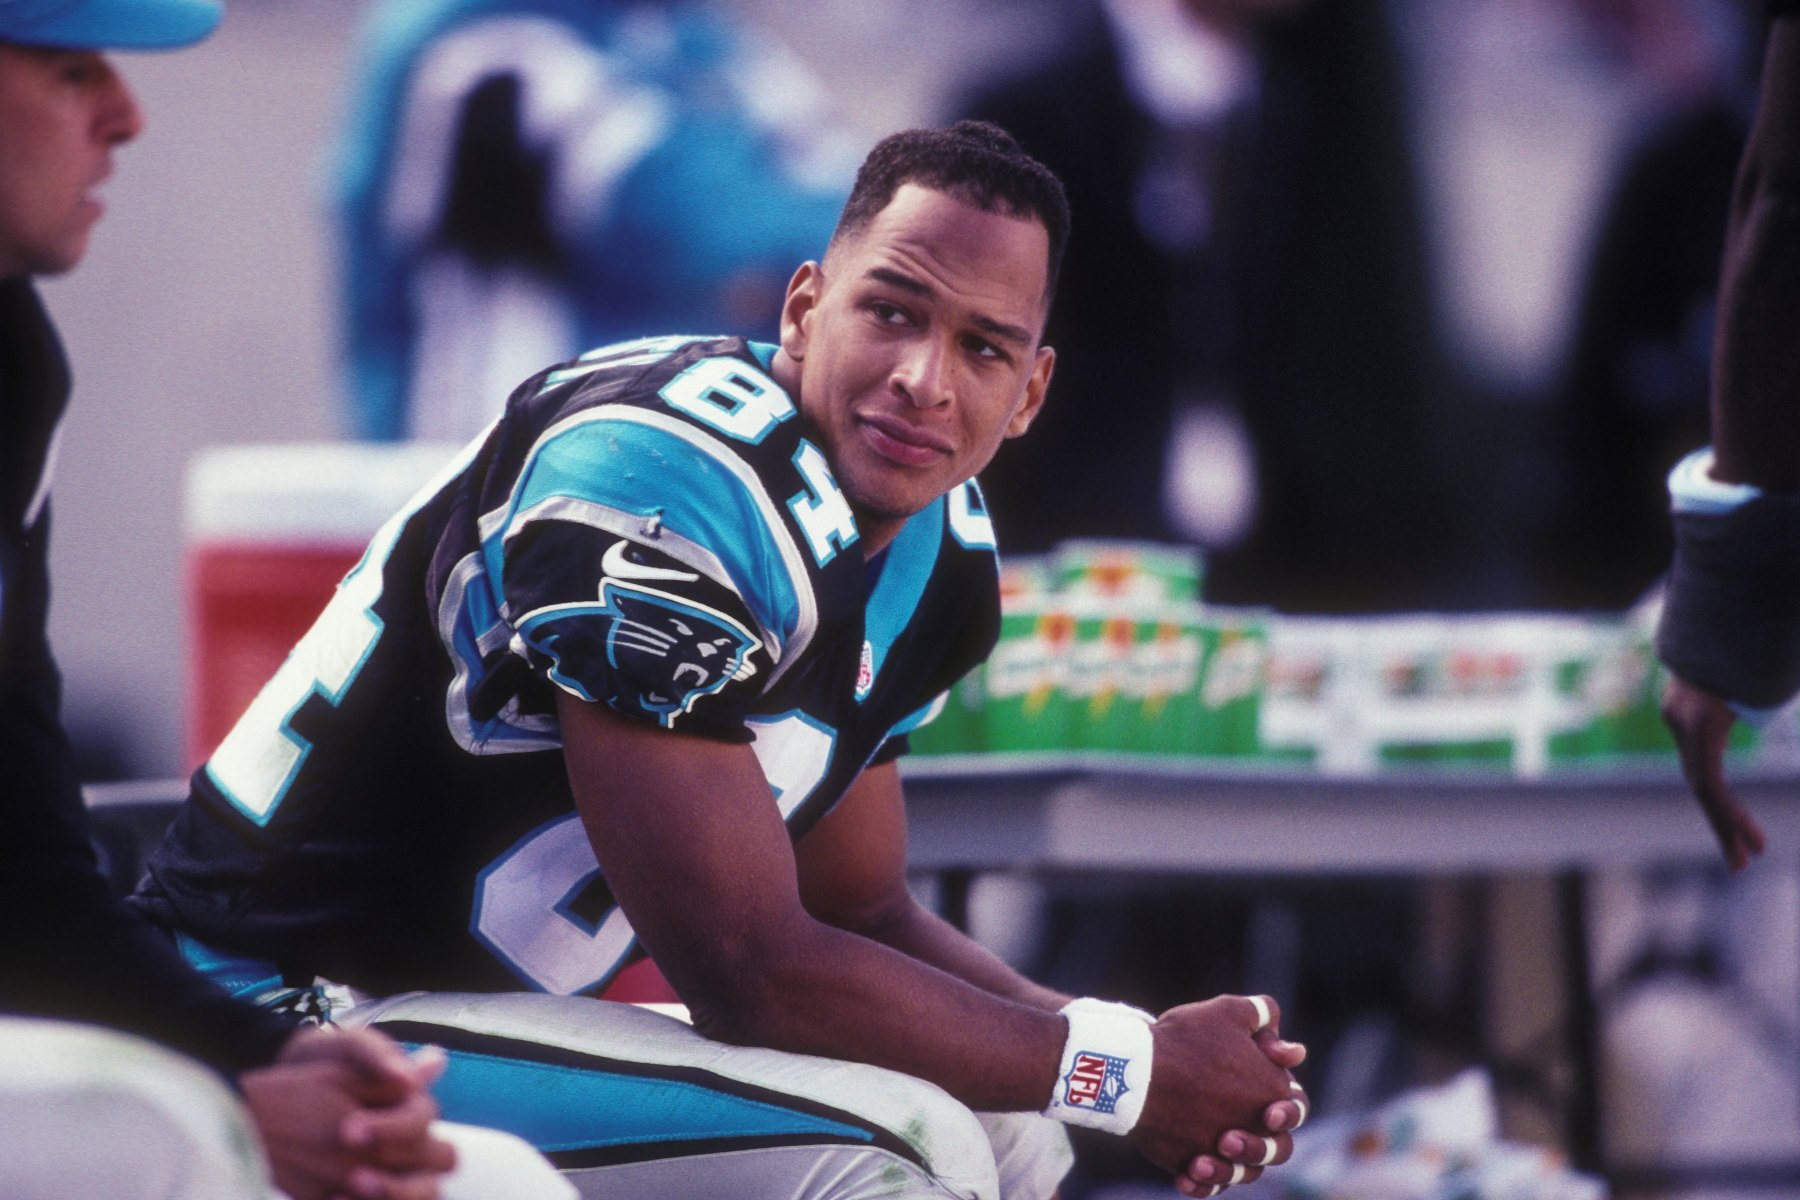 Rae Carruth #83 of the Carolina Panthers during a NFL football game against the Oakland Raiders on November 2, 1997 at Ericsson Stadium in Charlotte, North Carolina.   (Photo by Mitchell Layton/Getty Images)